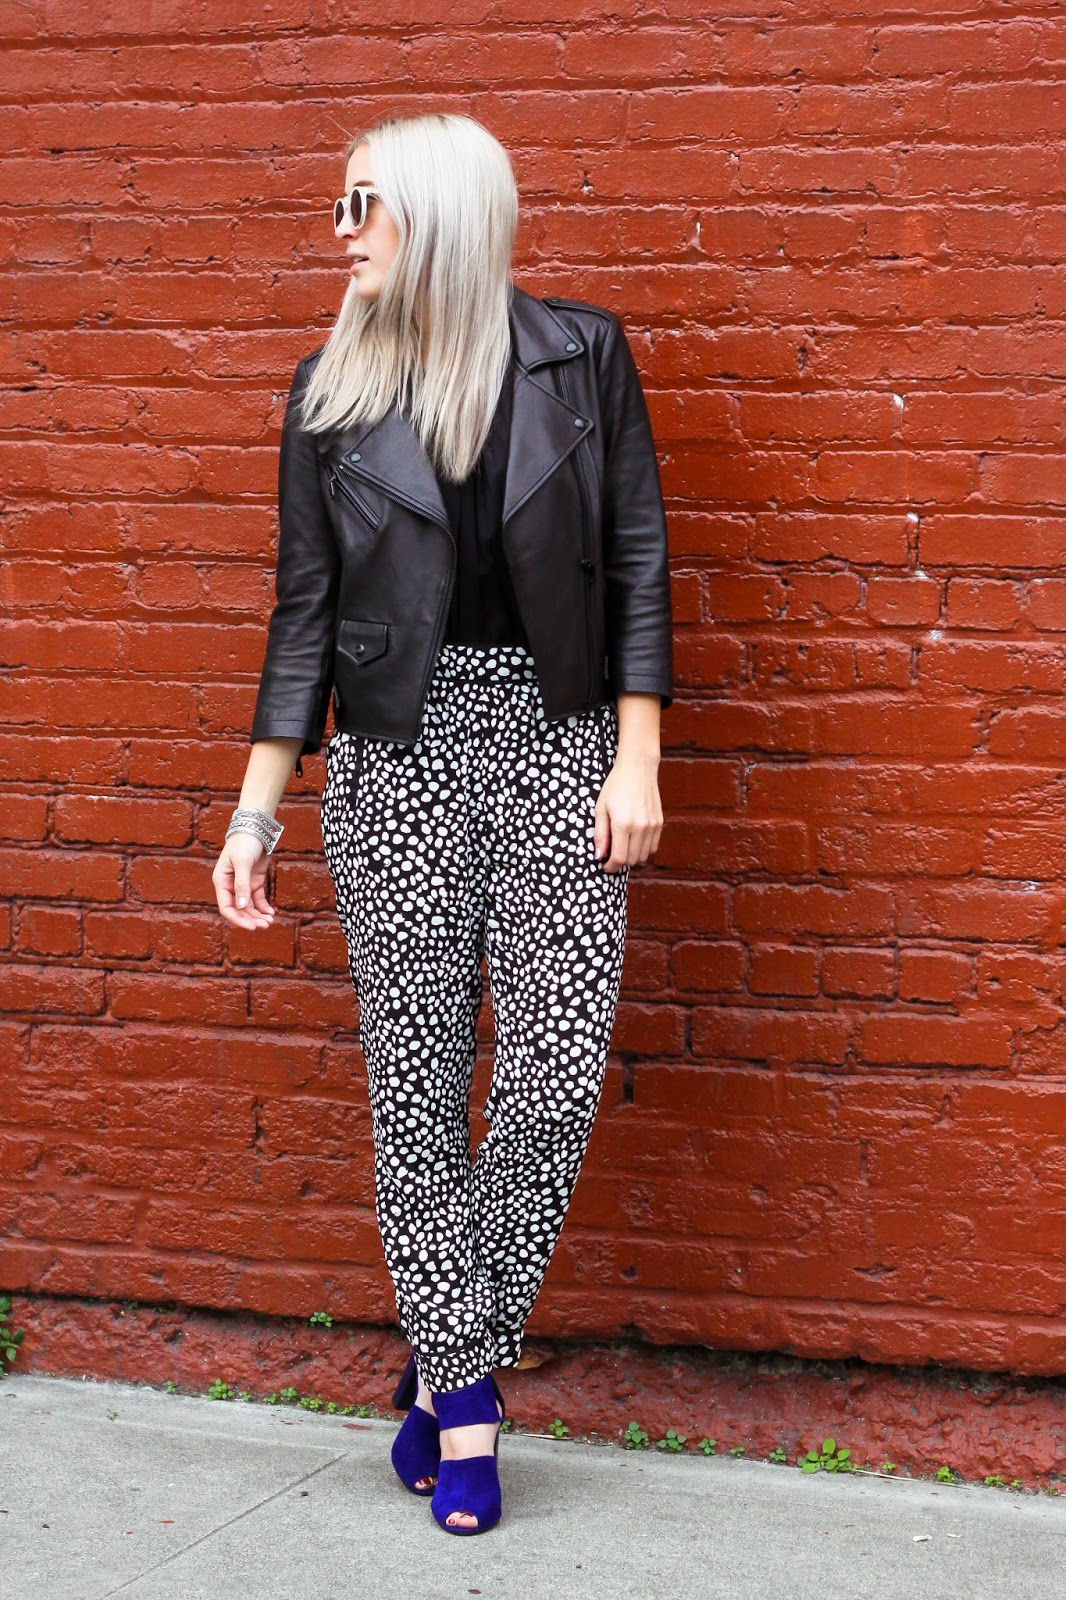 San Francisco Blogger Stone Fox Style shows you how to wear patterned pajama trousers